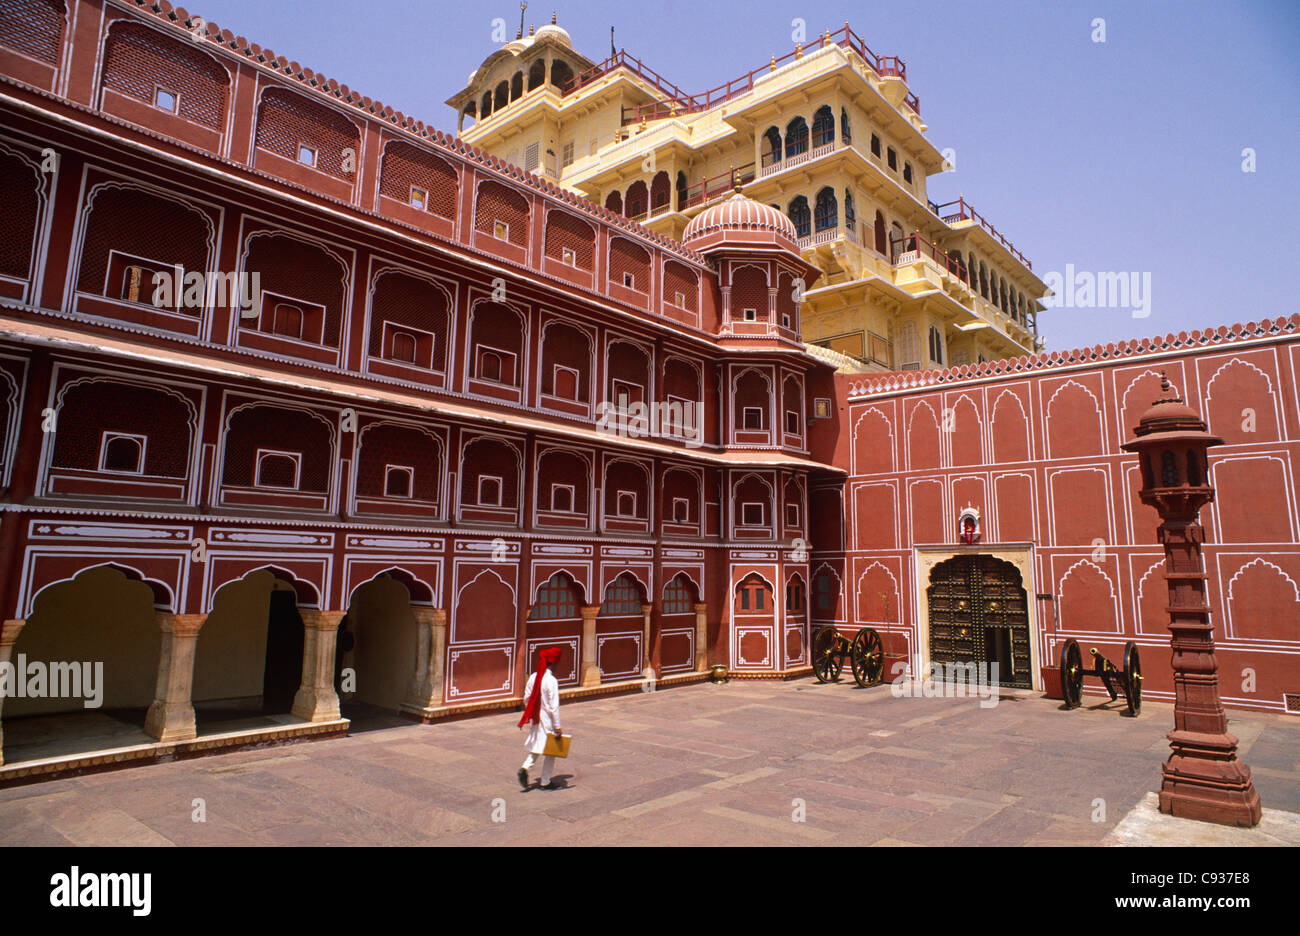 India, Rajasthan, Jaipur. The cream-coloured Chandra Mahal, in the famous City Palace in the heart of Jaipur. - Stock Image